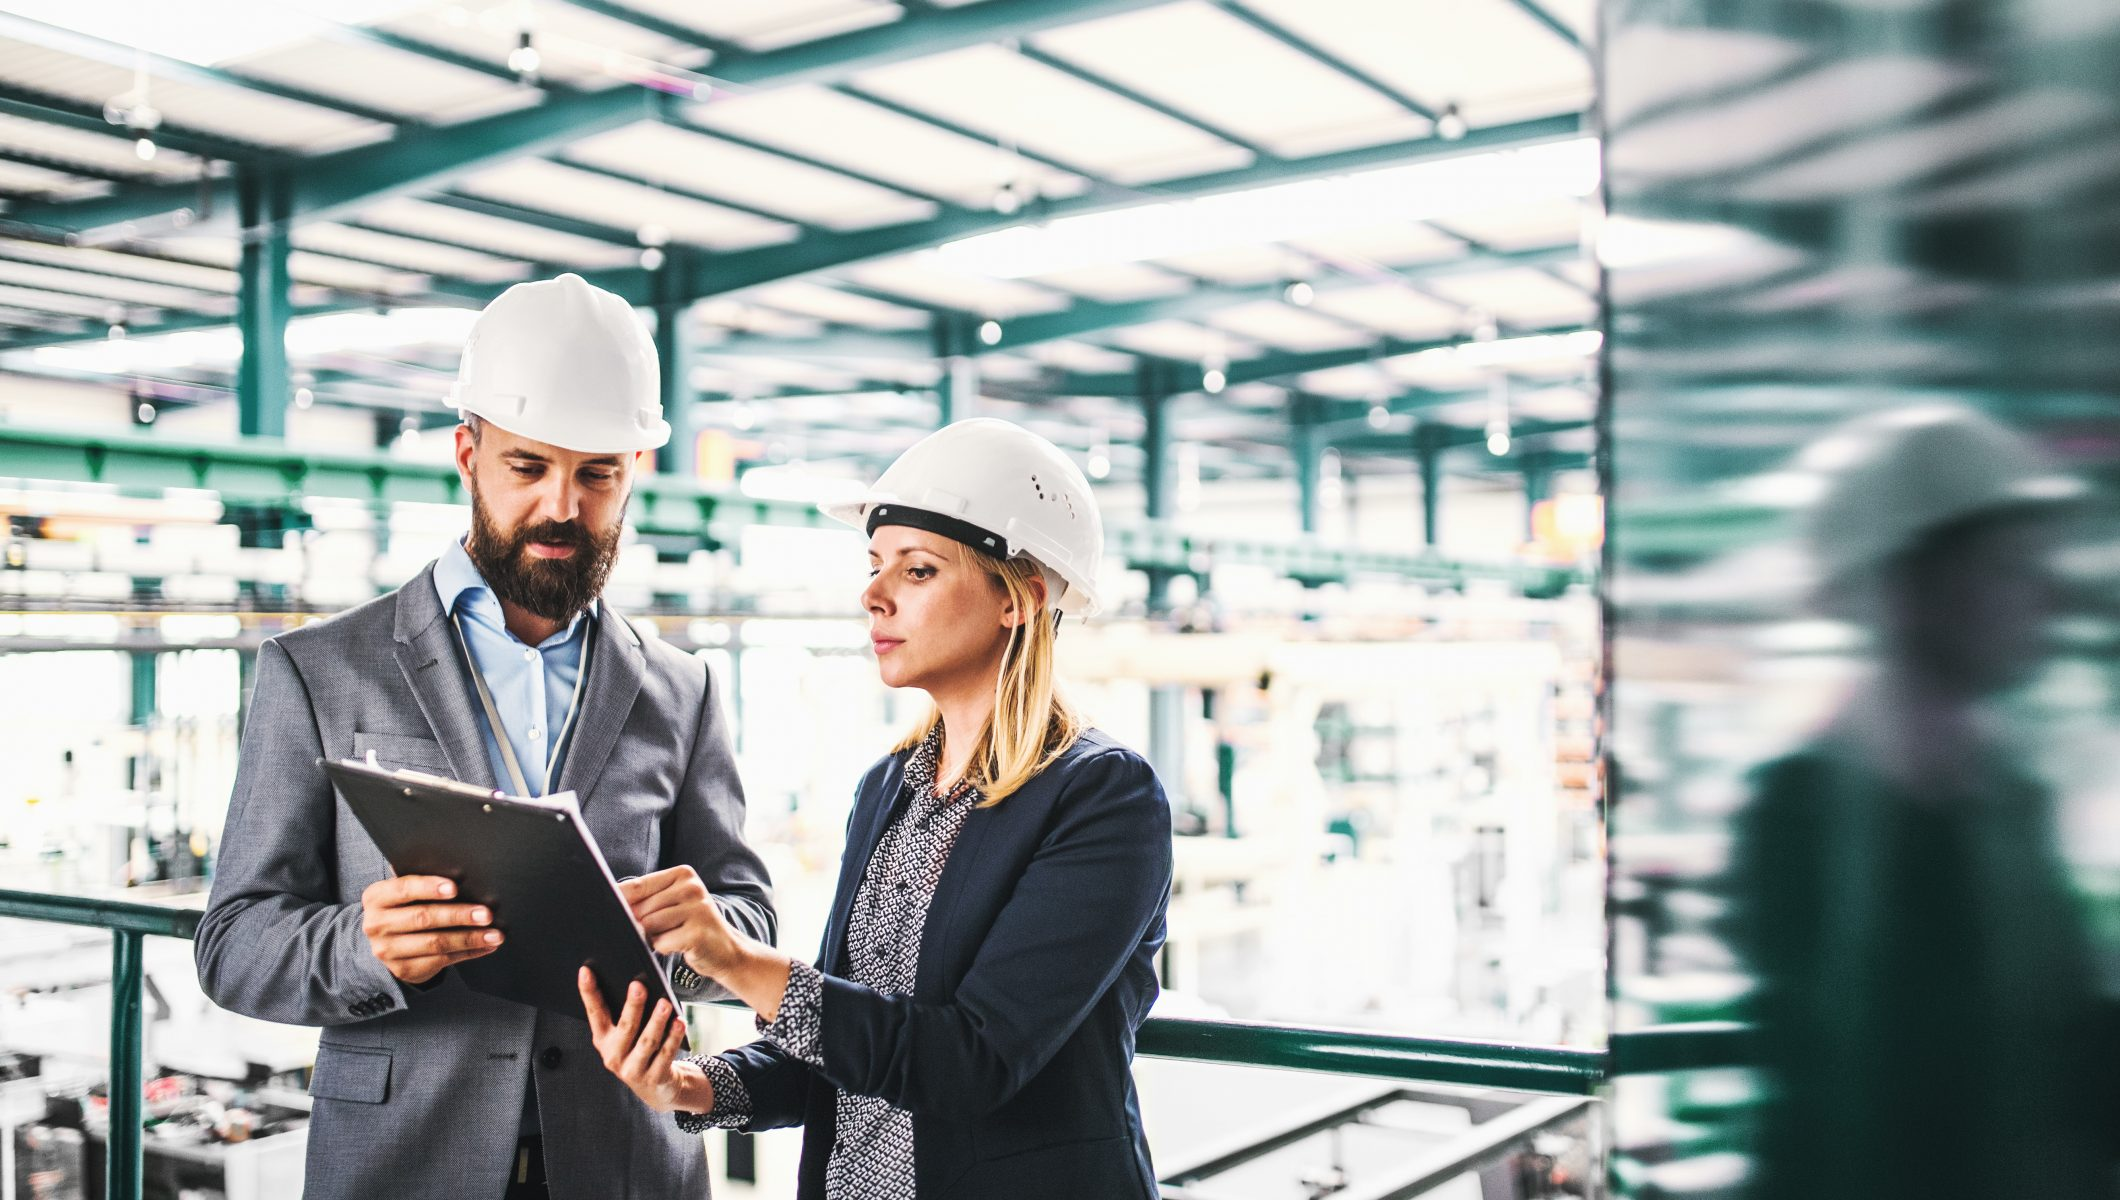 A portrait of a serious mature industrial man and woman engineer with clipboard in a factory, talking.